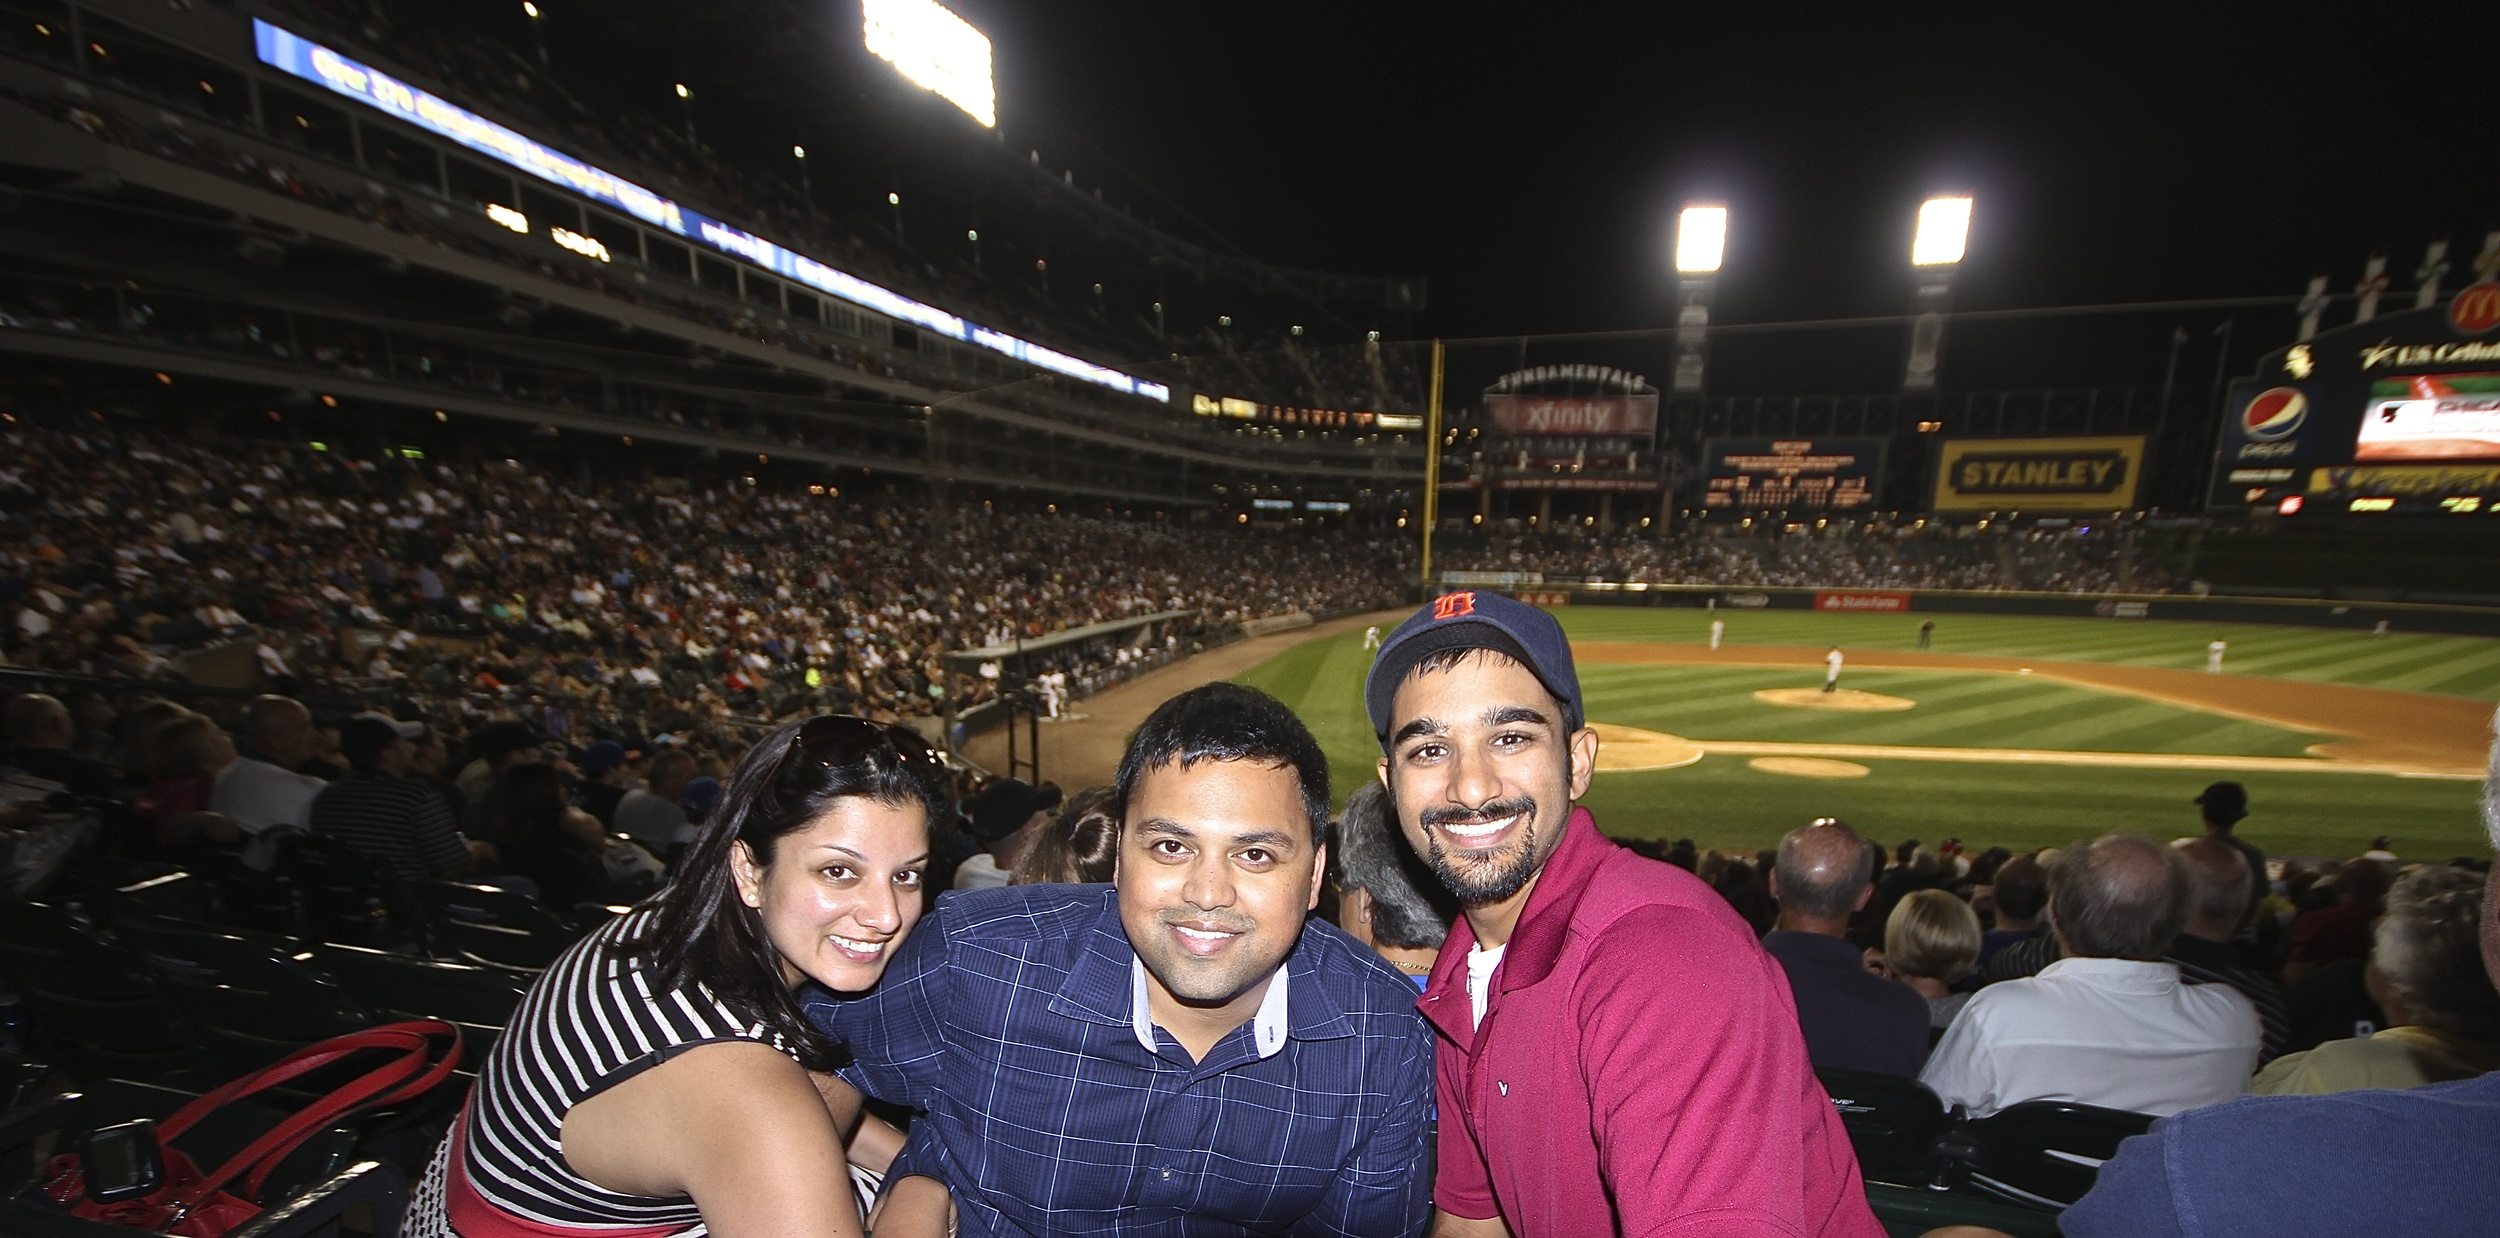 My sister Shikha, my brother-in-law Shakthi and me